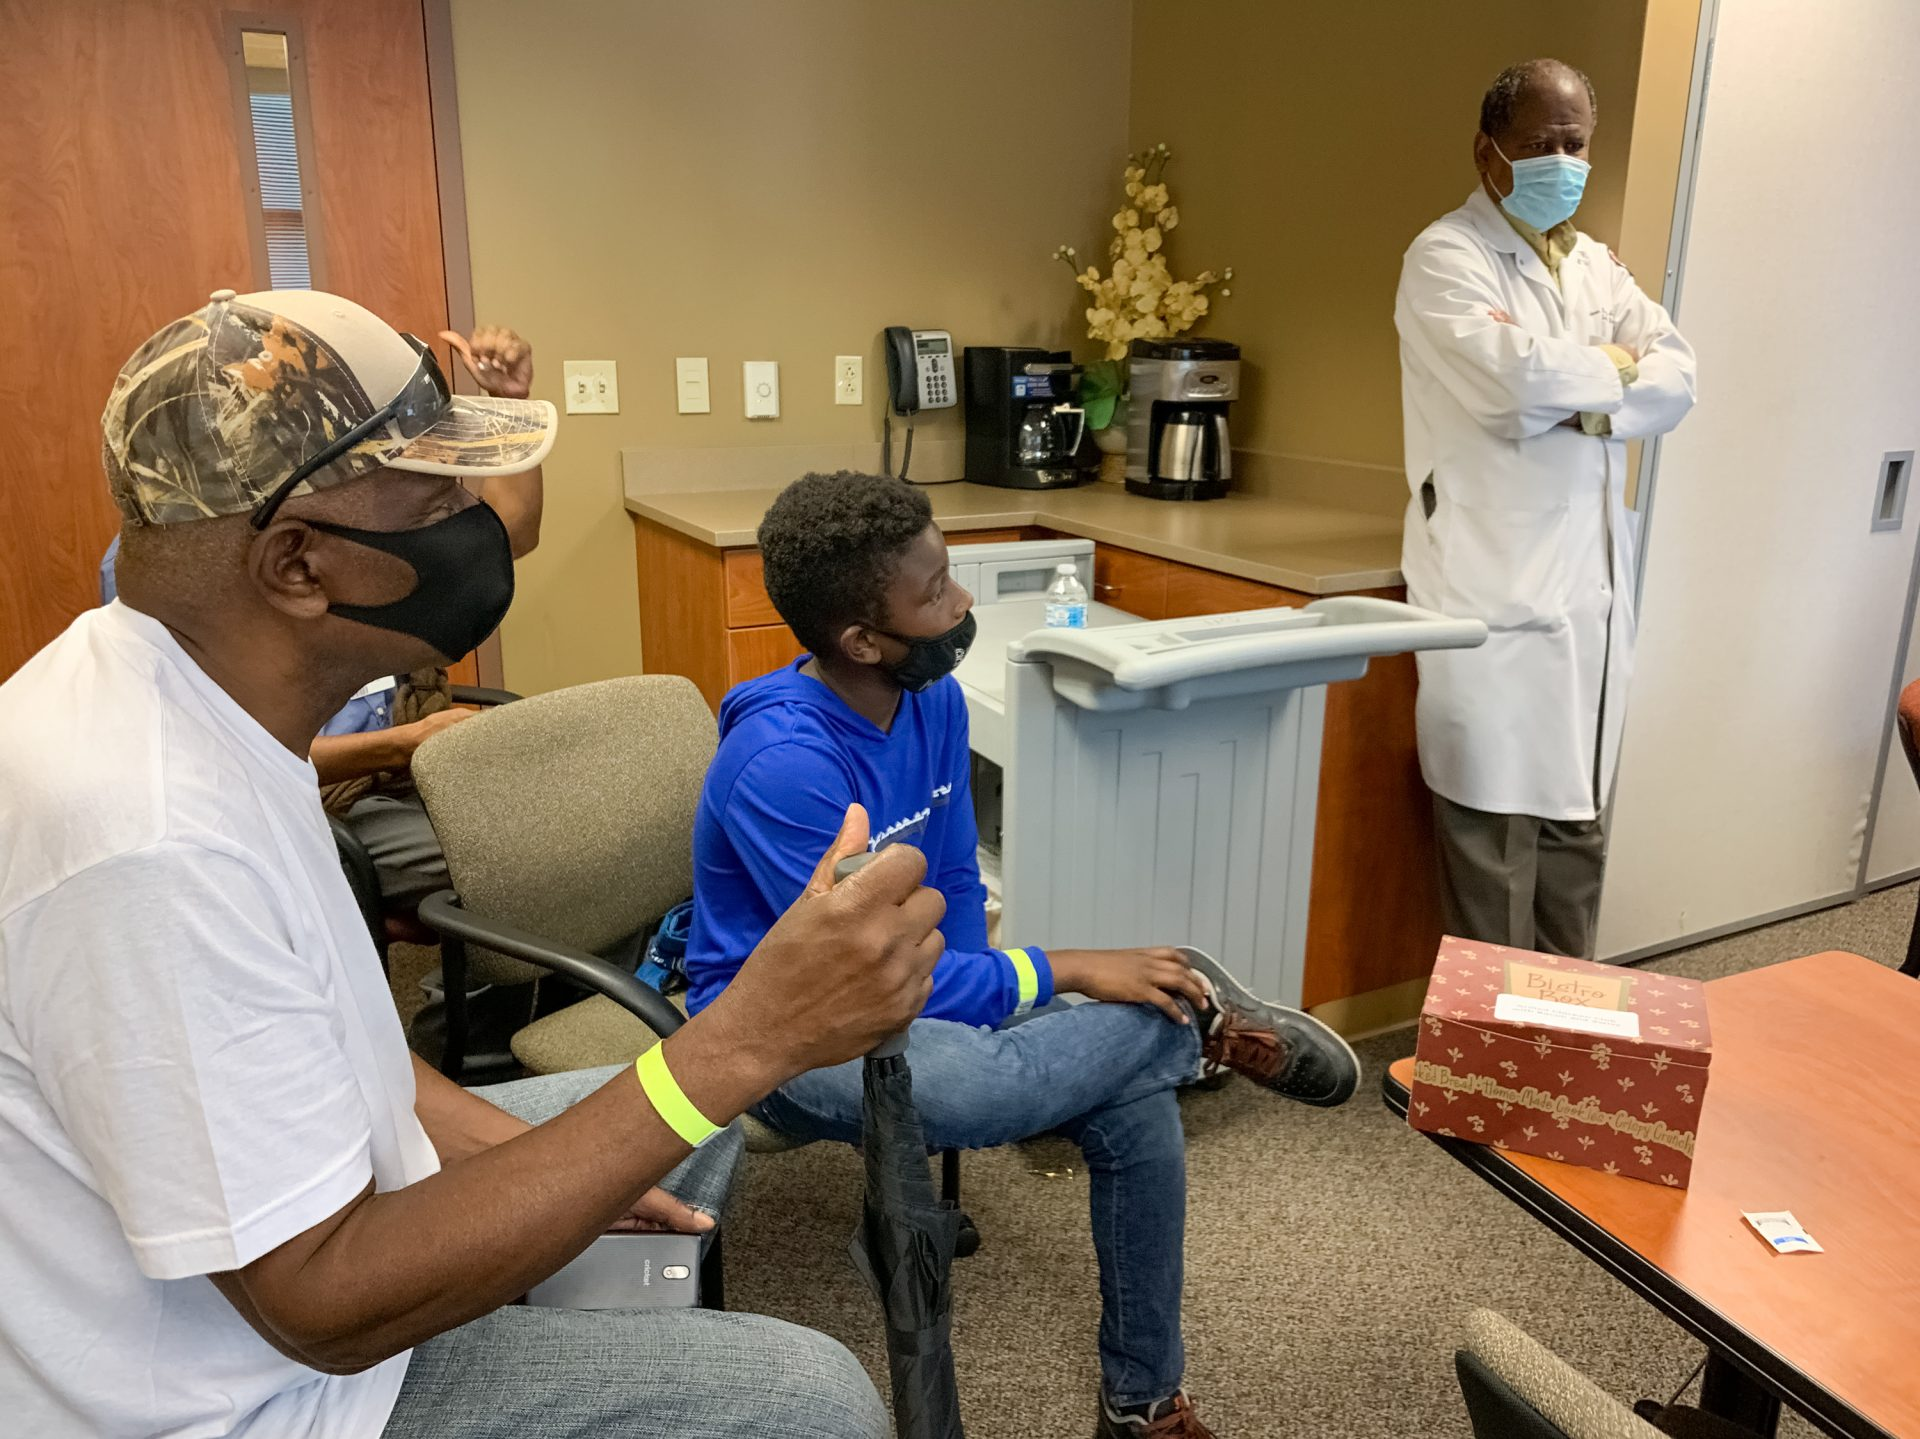 Robert Smith of Nashville listens to his long-time physician, Dr. Vladimir Berthaud of Meharry Medical College, explain the importance of Black patients participating in clinical trials for the COVID-19 vaccine. Berthaud is leading the site hosted at the historically black medical school.